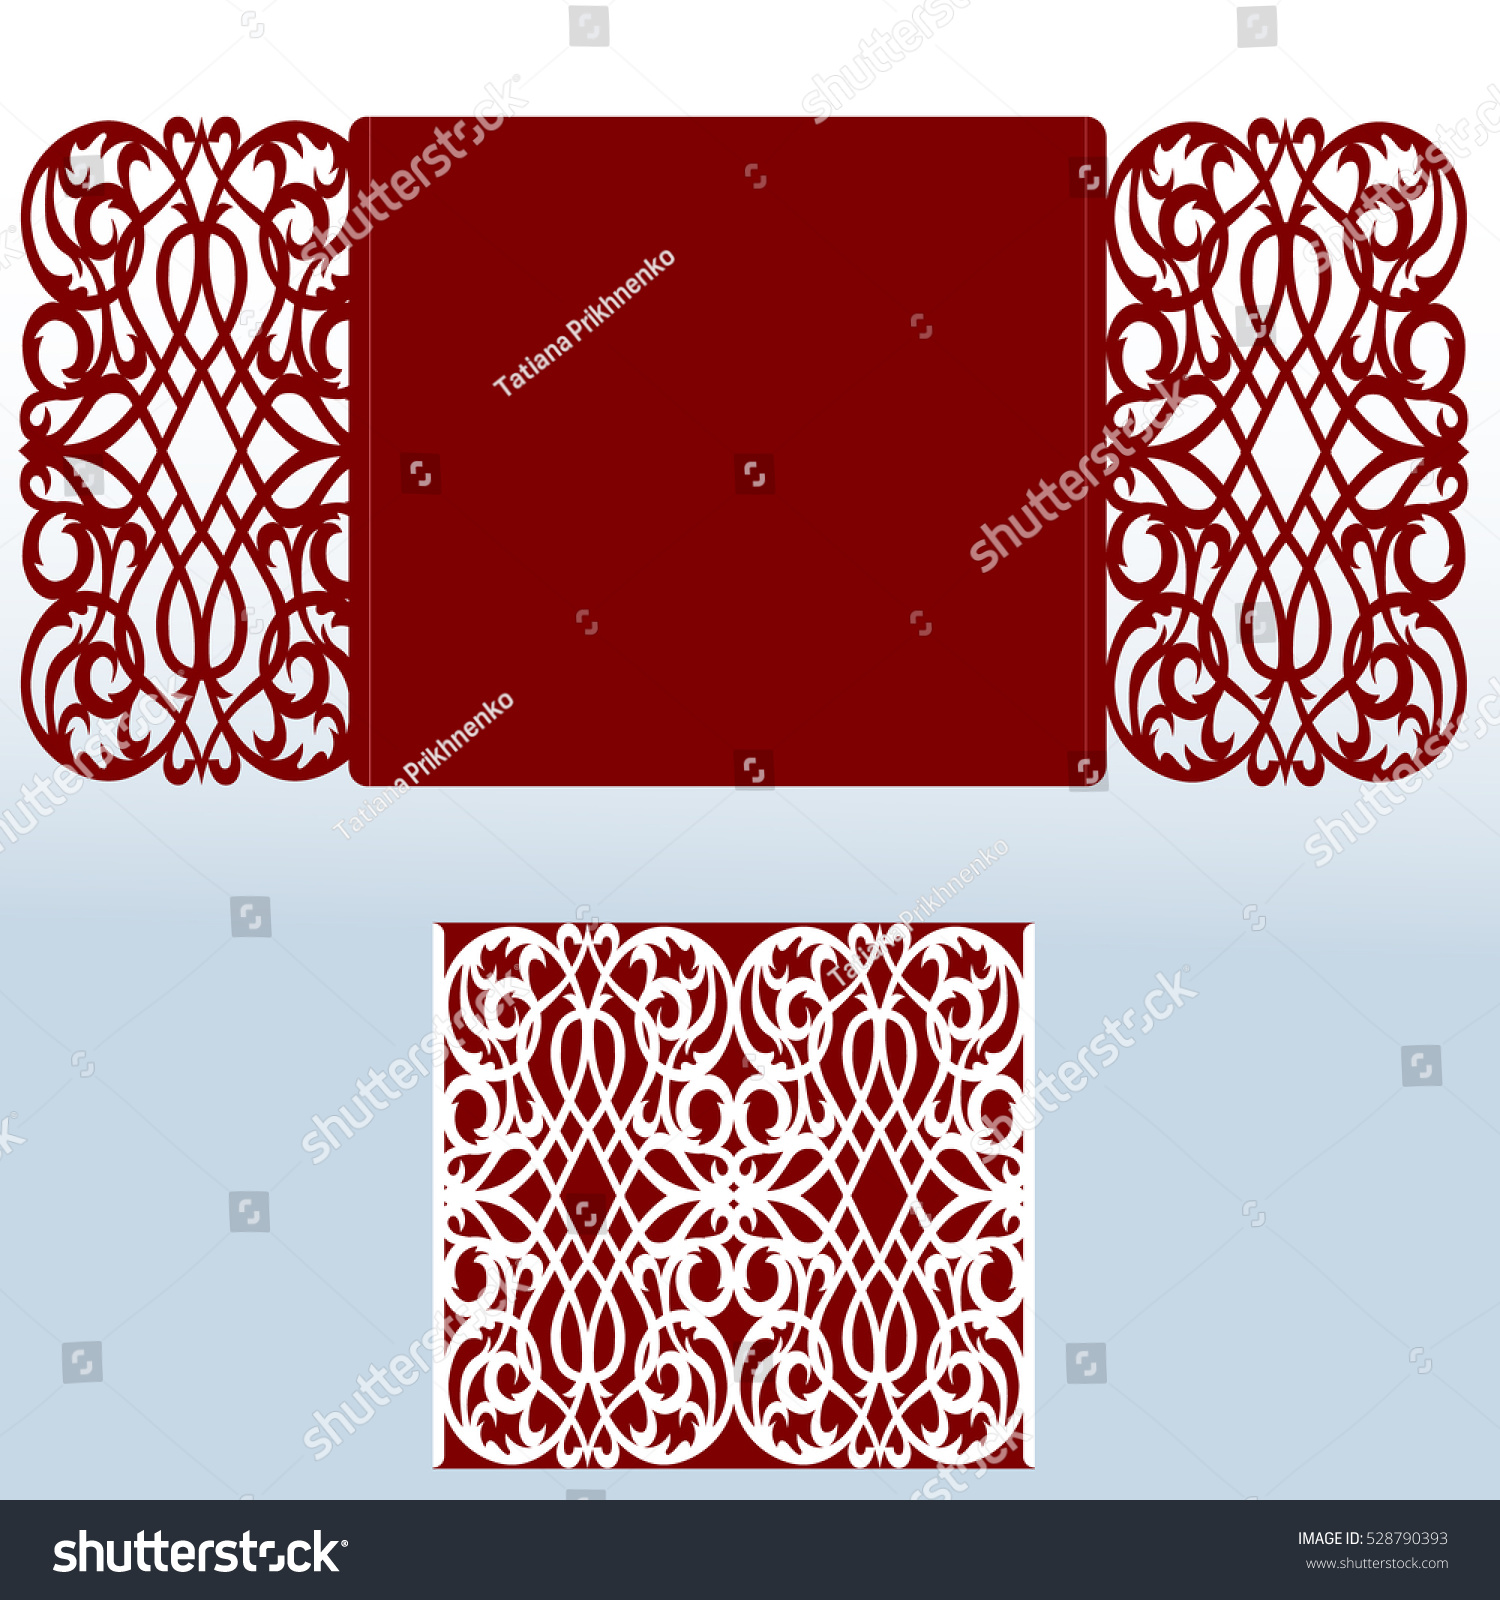 Card Laser Cutting Vs Die Cutting Stock Vector (Royalty Free ...